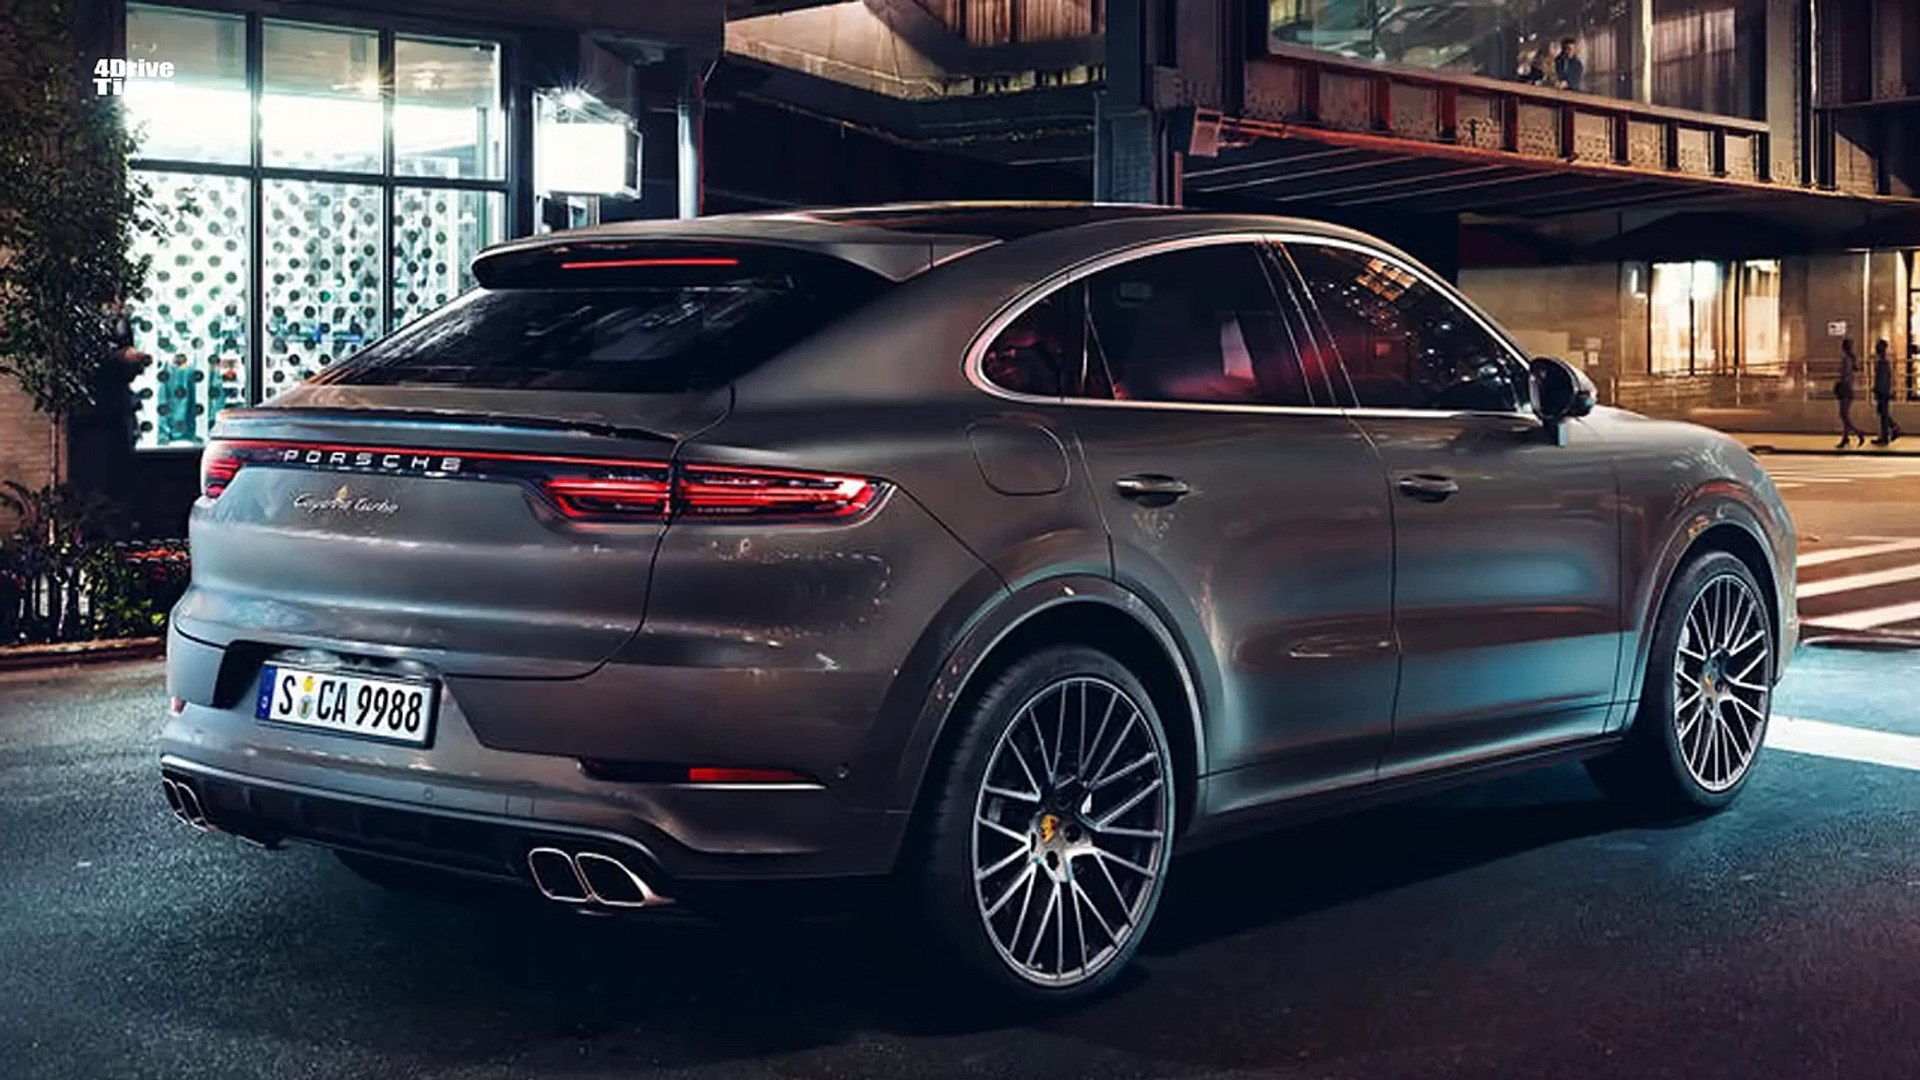 2020 Porsche Cayenne Turbo Coupe Interior Exterior And Drive Video Dailymotion